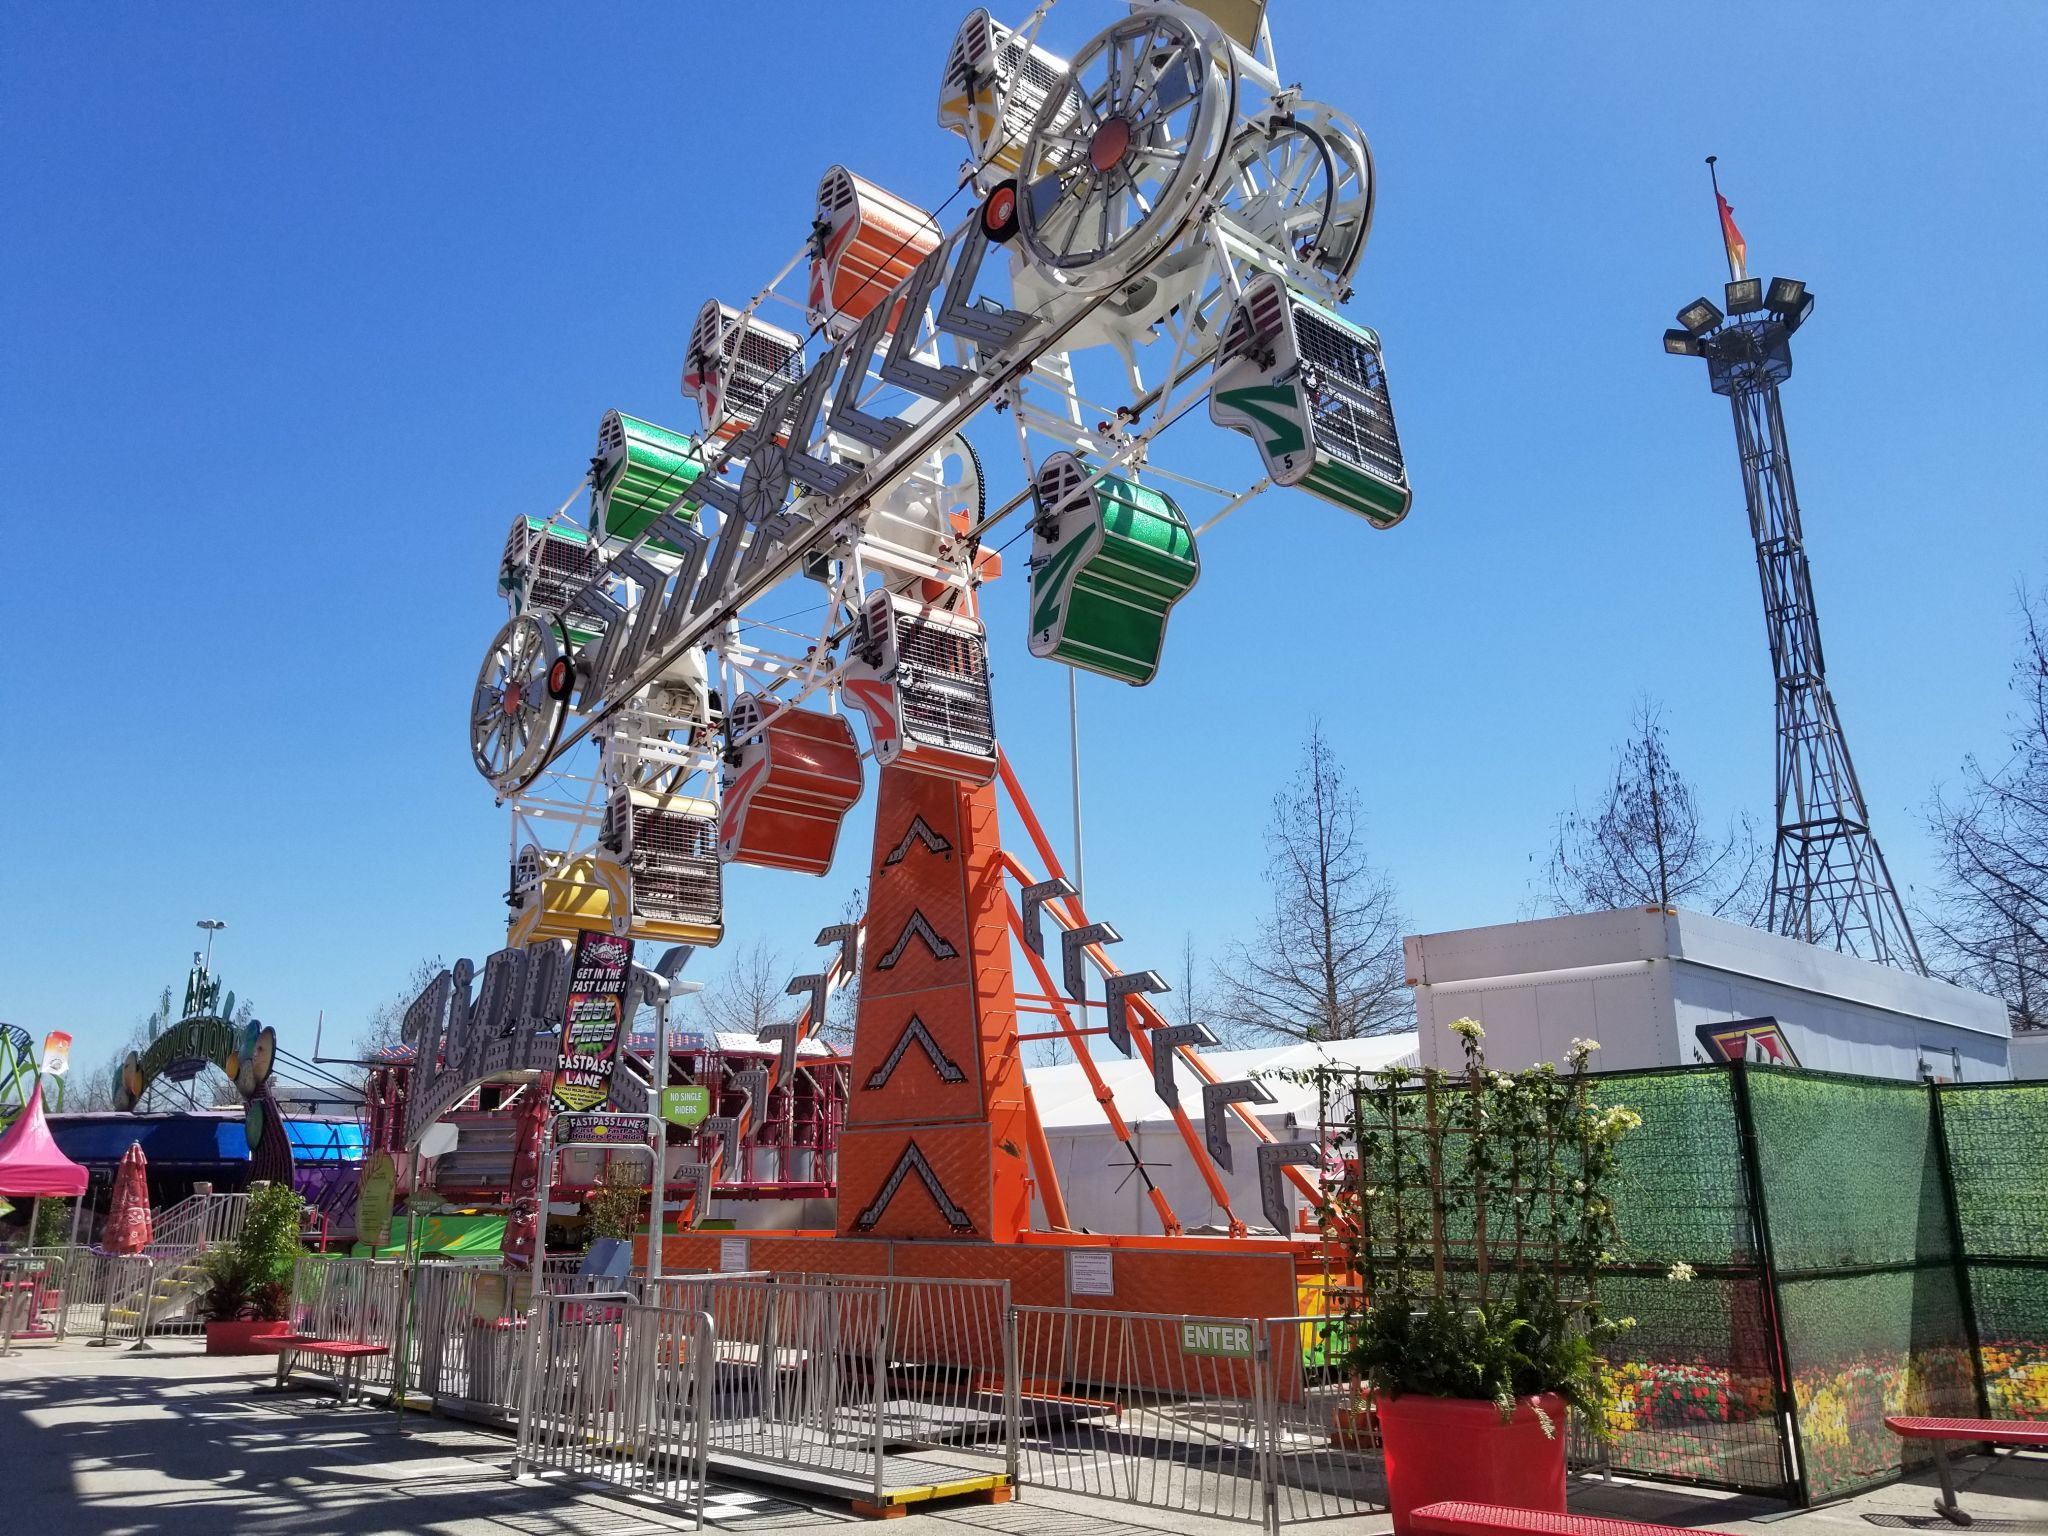 Best And Worst Carnival Rides At Rodeohouston Houston